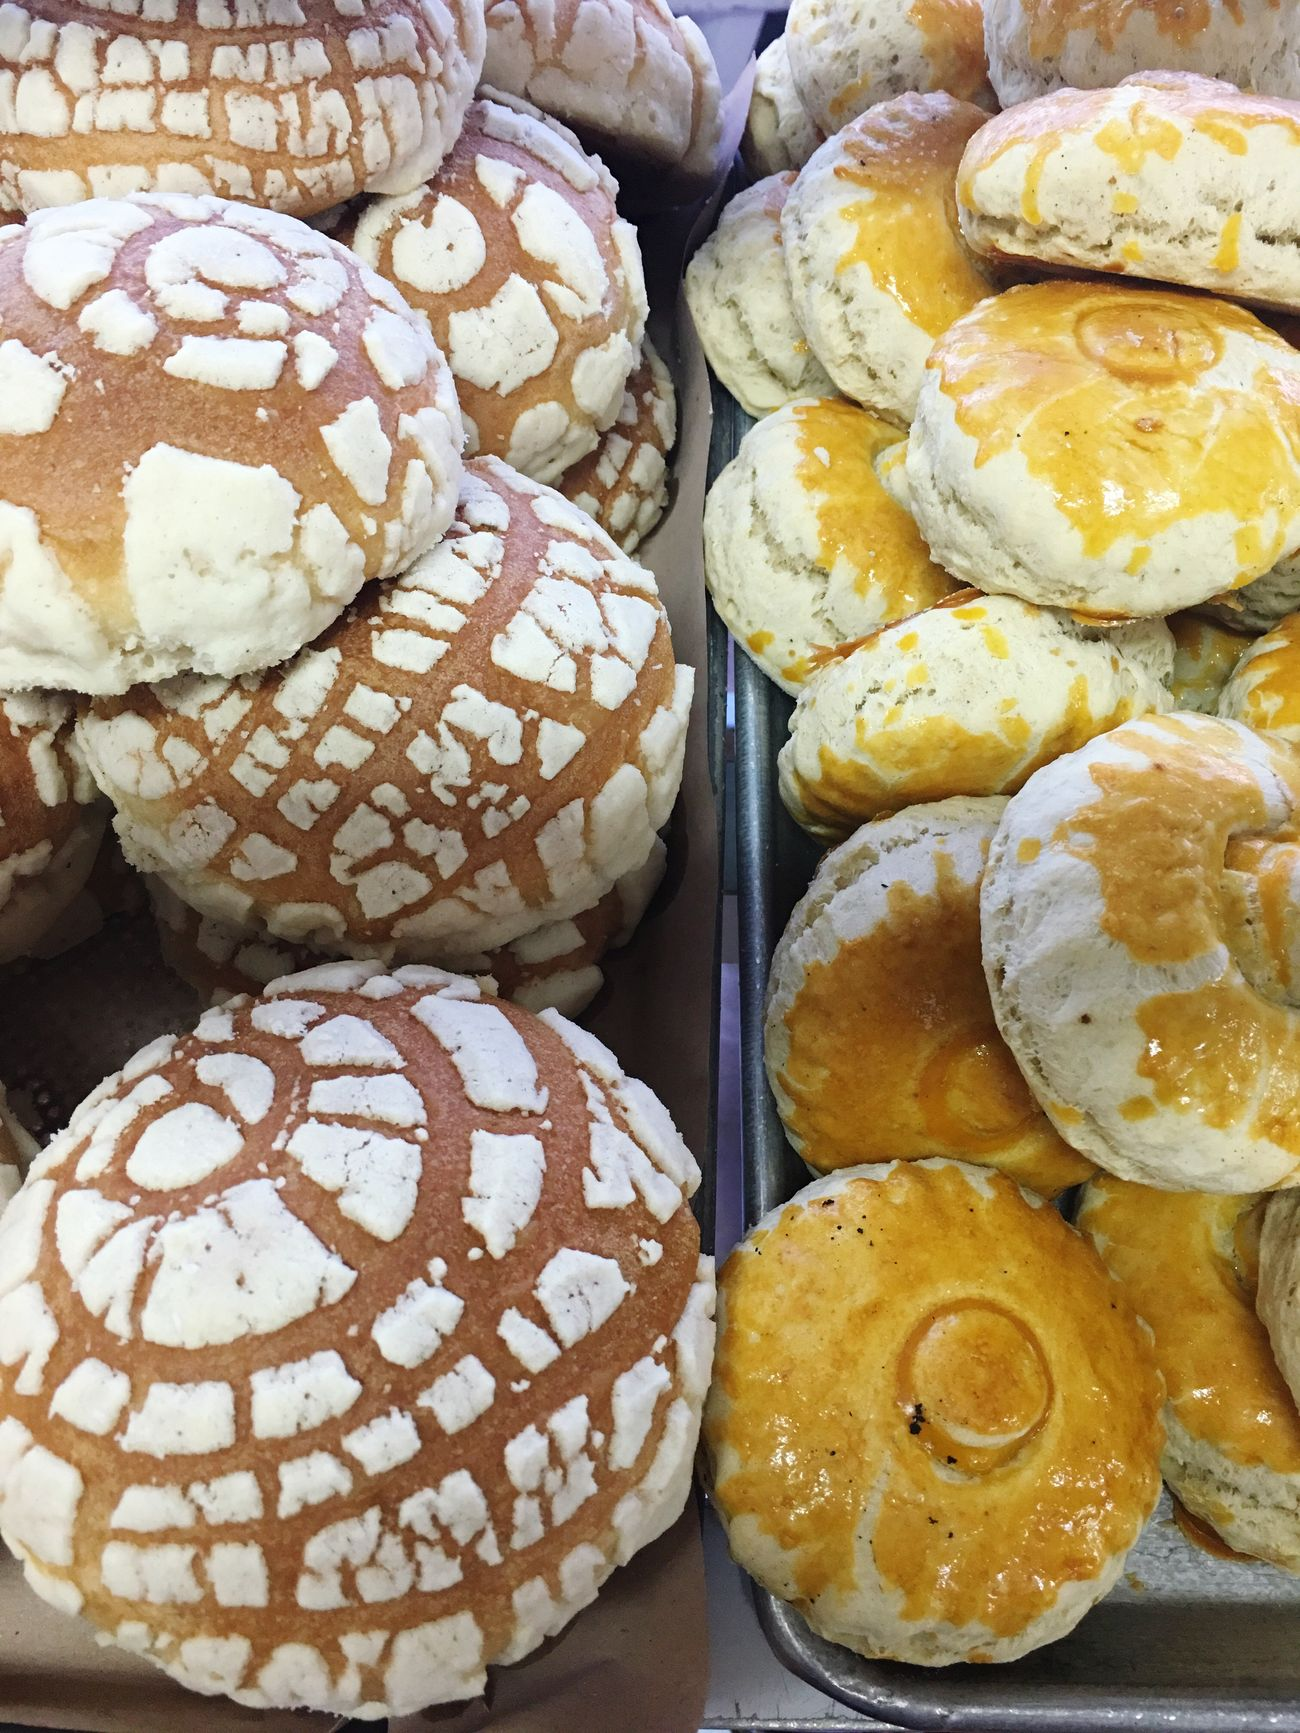 Mexican swett bread ❤️ Food Baked No People Ready-to-eat Bakery Day Mexico Yucatan Mexico